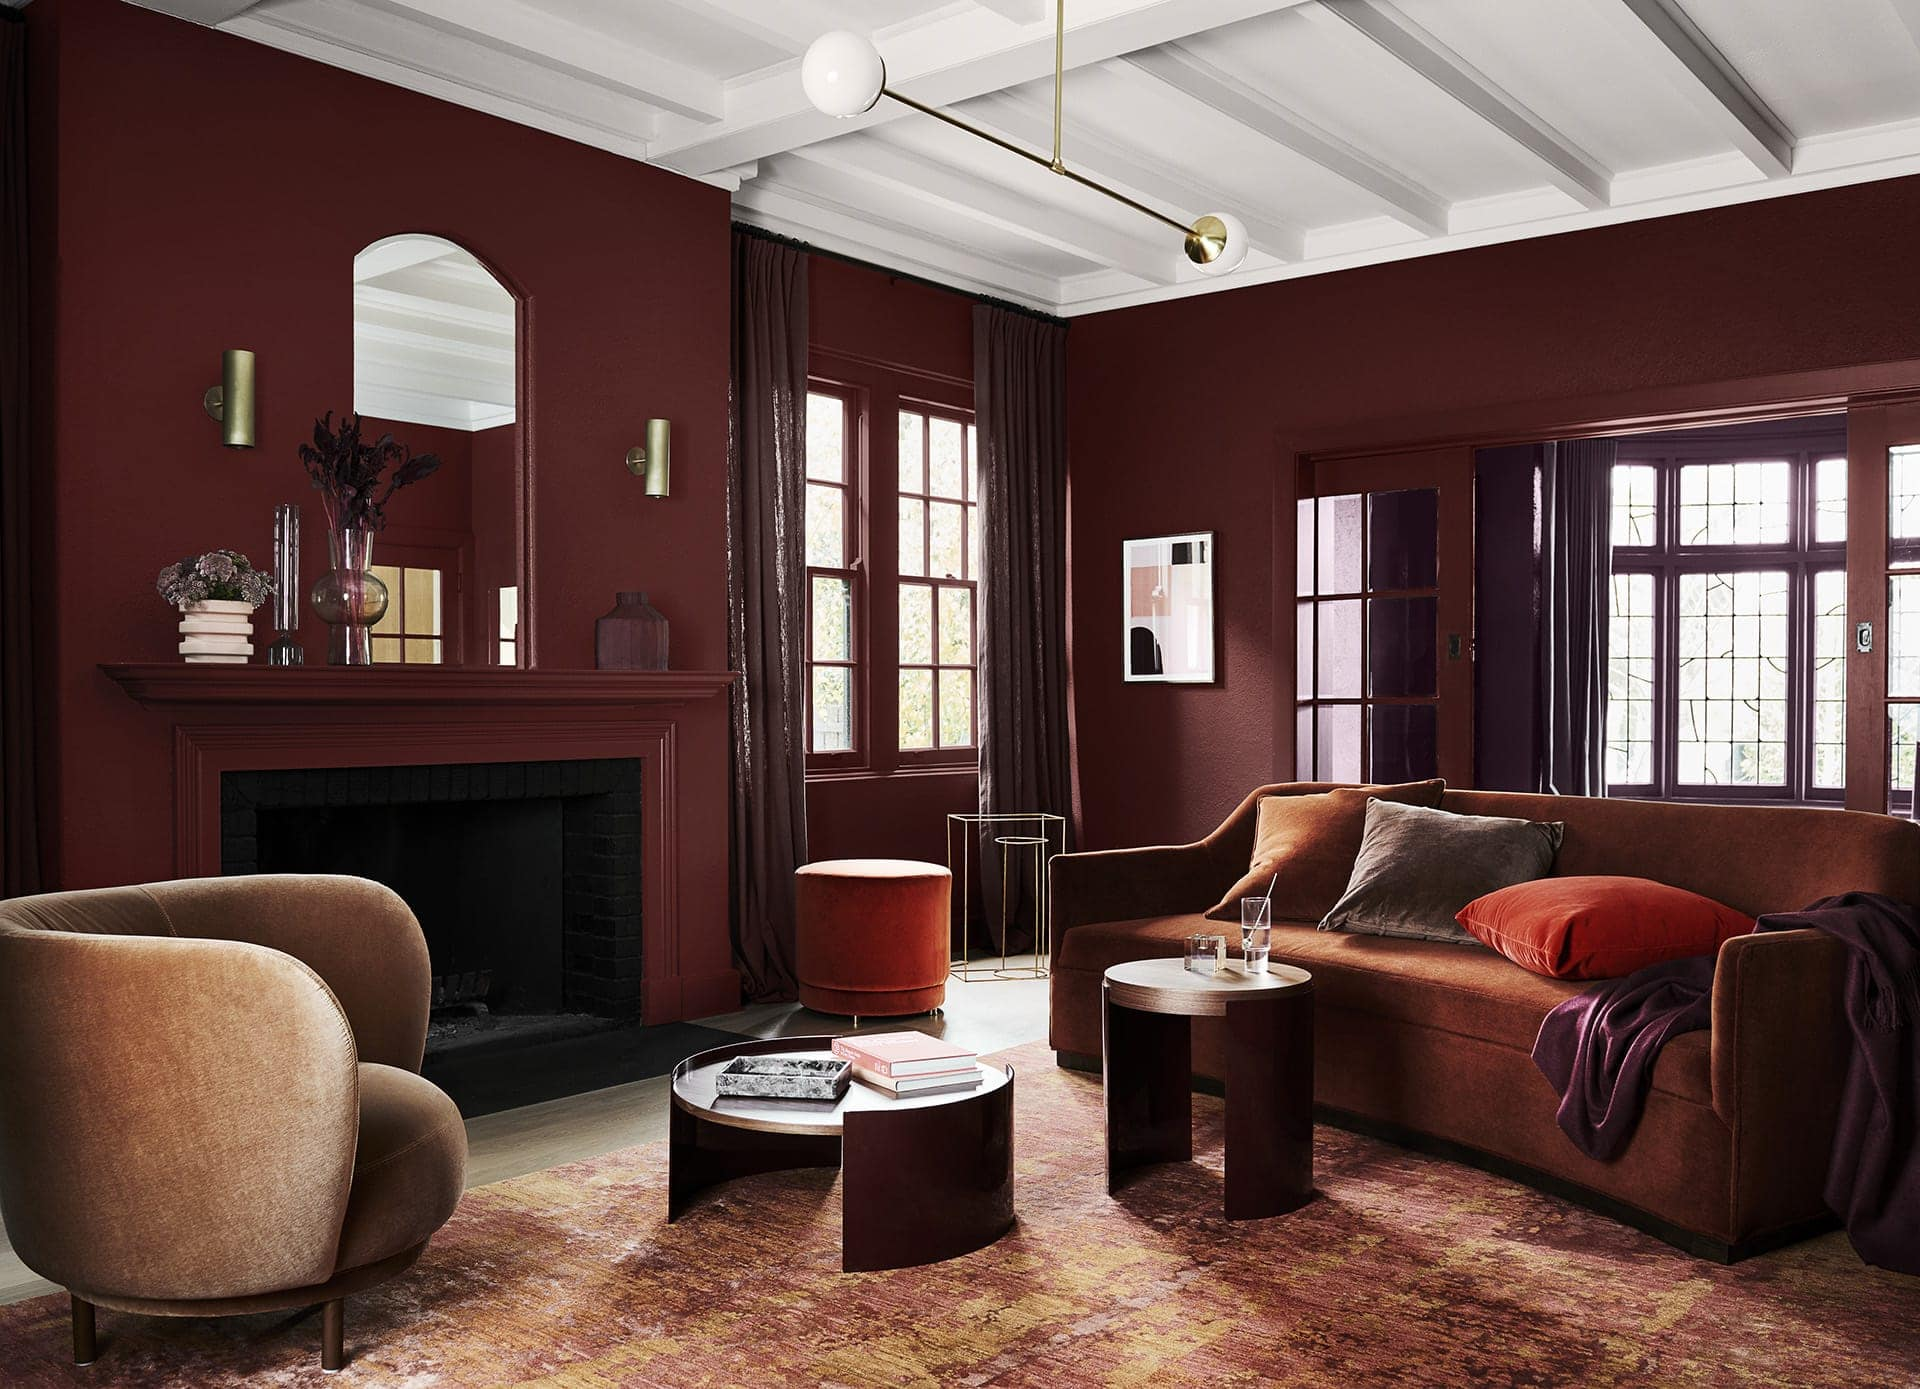 dulux 2020 colour forecast dark maroon living room with brass accents